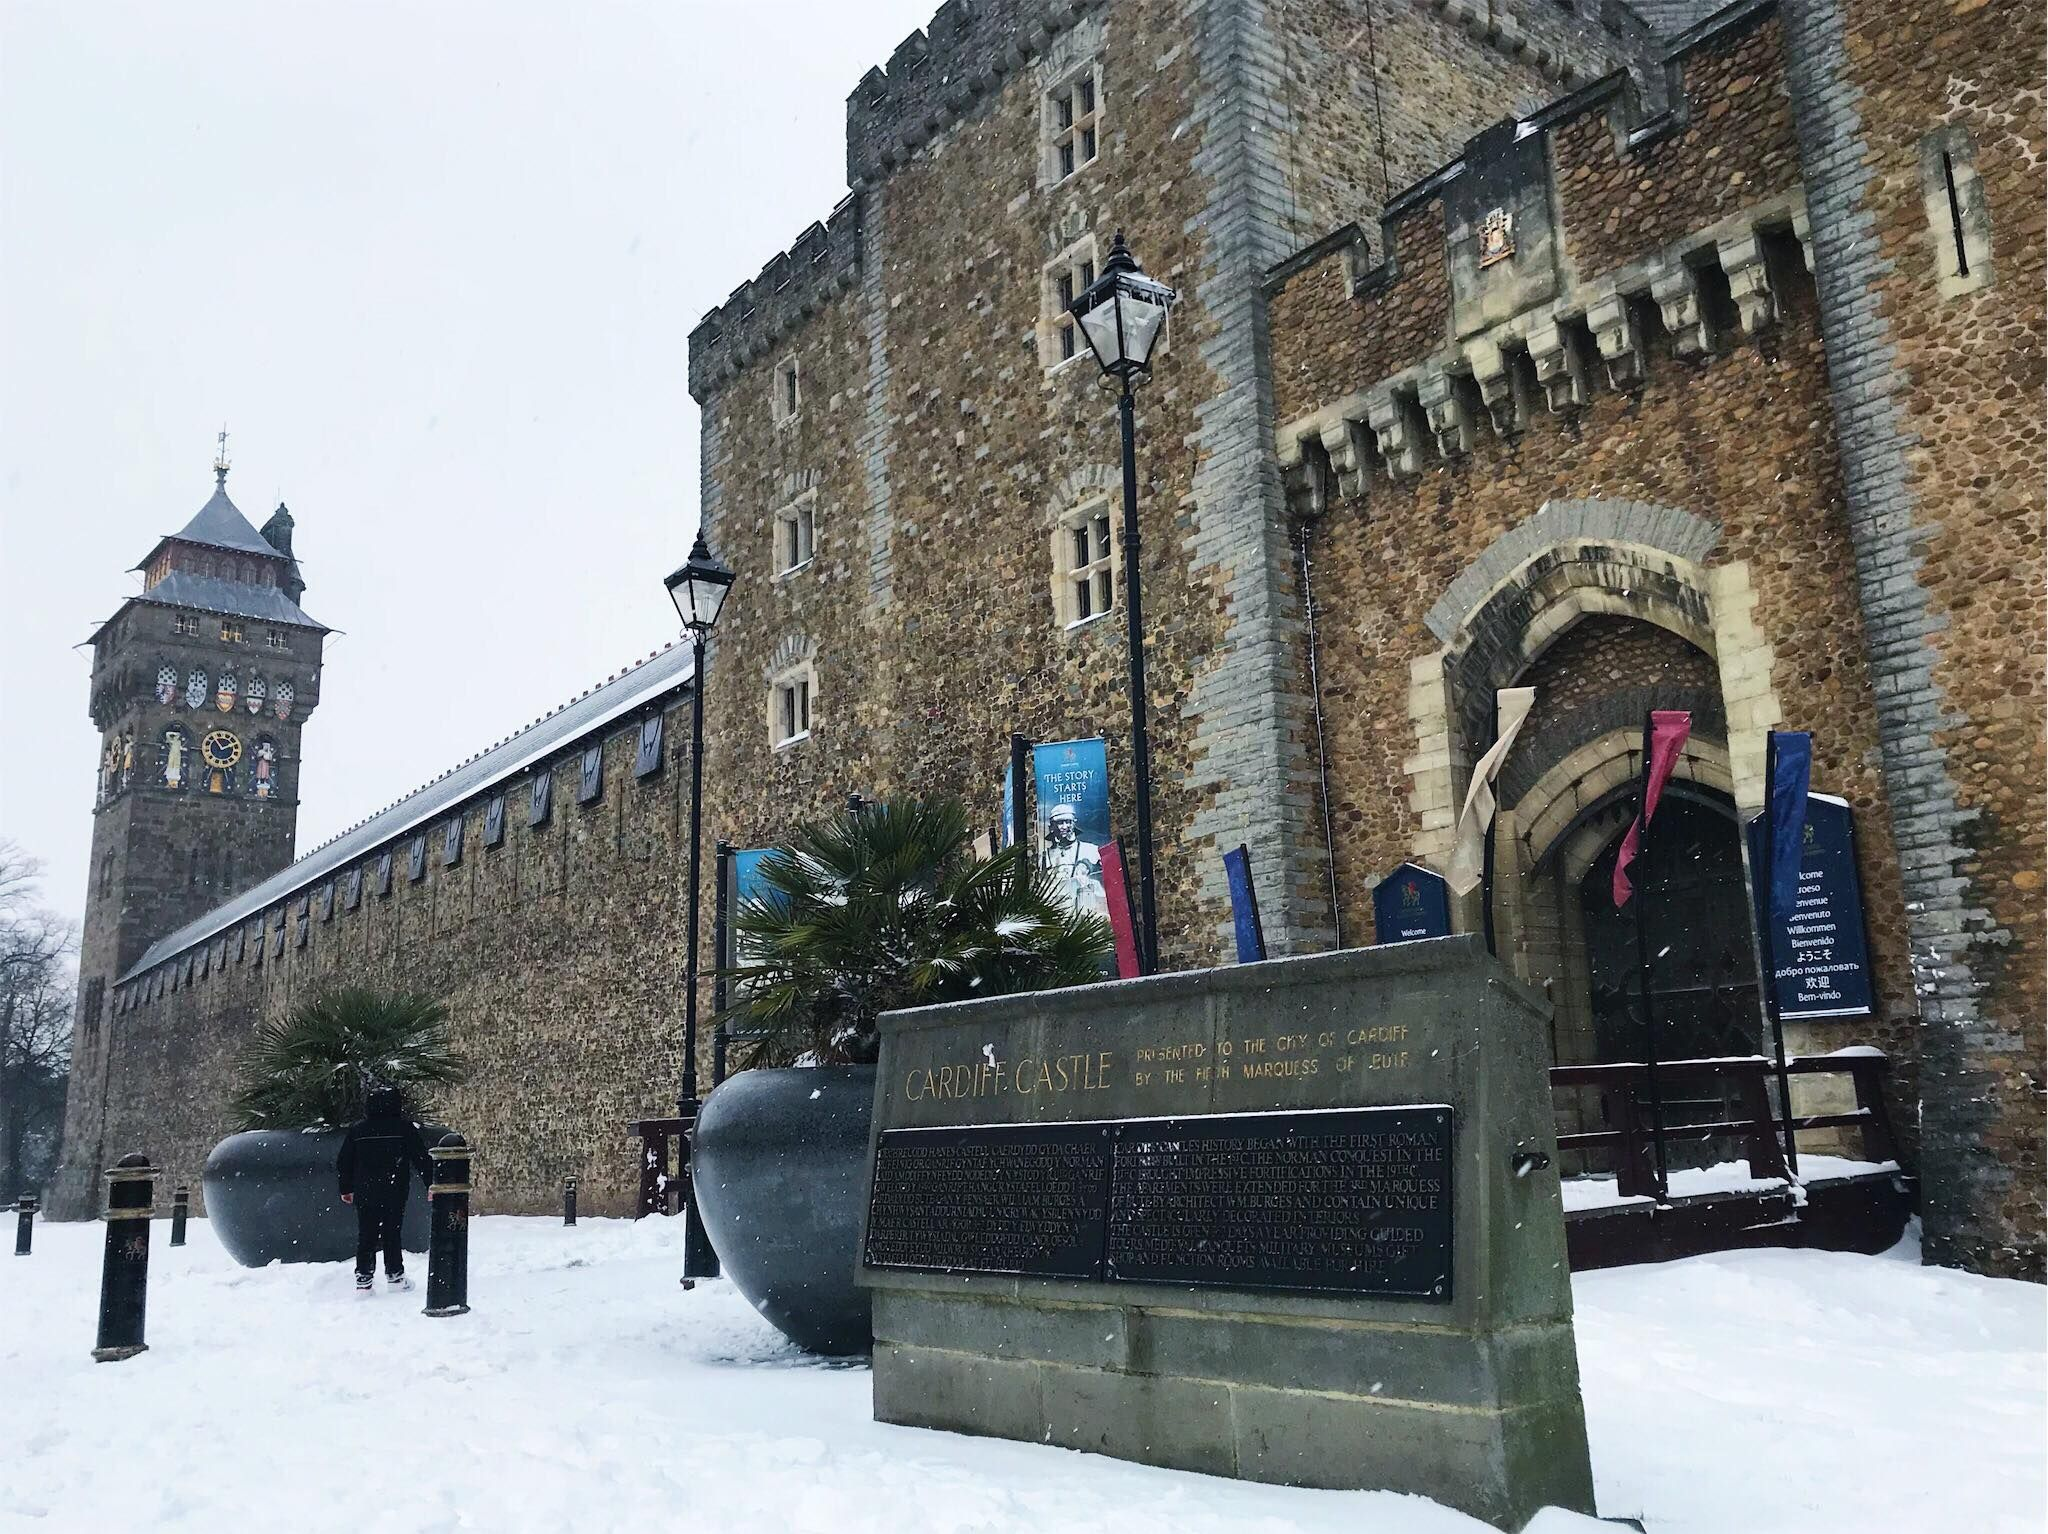 Image may contain: Snow, Outdoors, Castle, Clock Tower, Tower, Building, Architecture